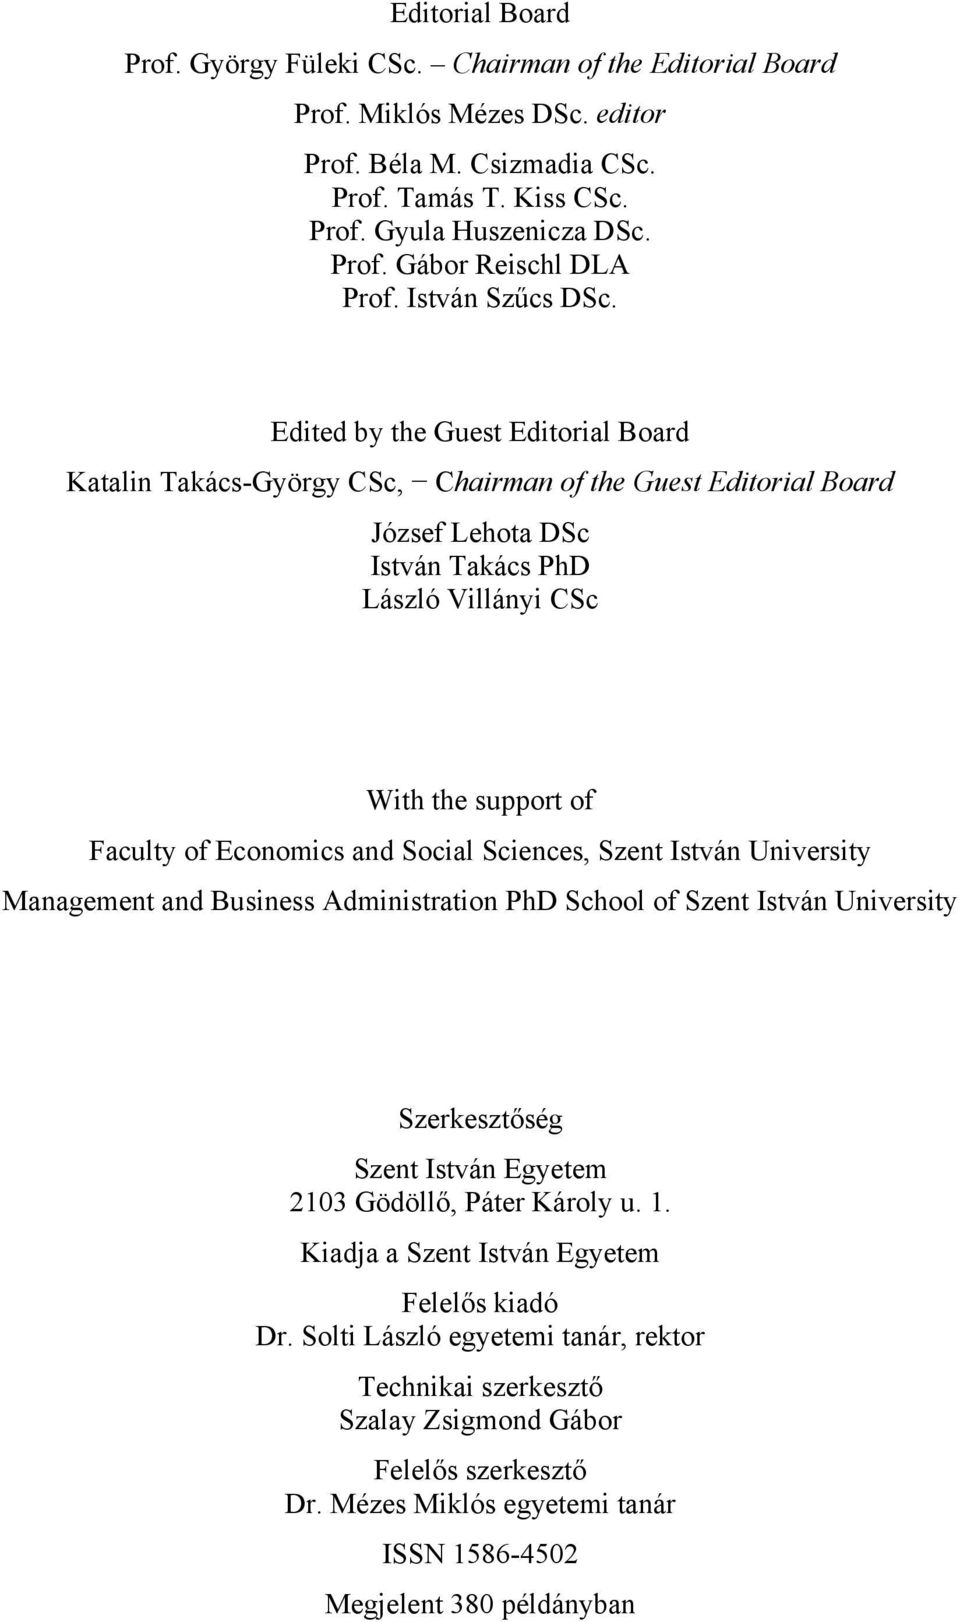 Edited by the Guest Editorial Board Katalin Takács-György CSc, Chairman of the Guest Editorial Board József Lehota DSc István Takács PhD László Villányi CSc With the support of Faculty of Economics